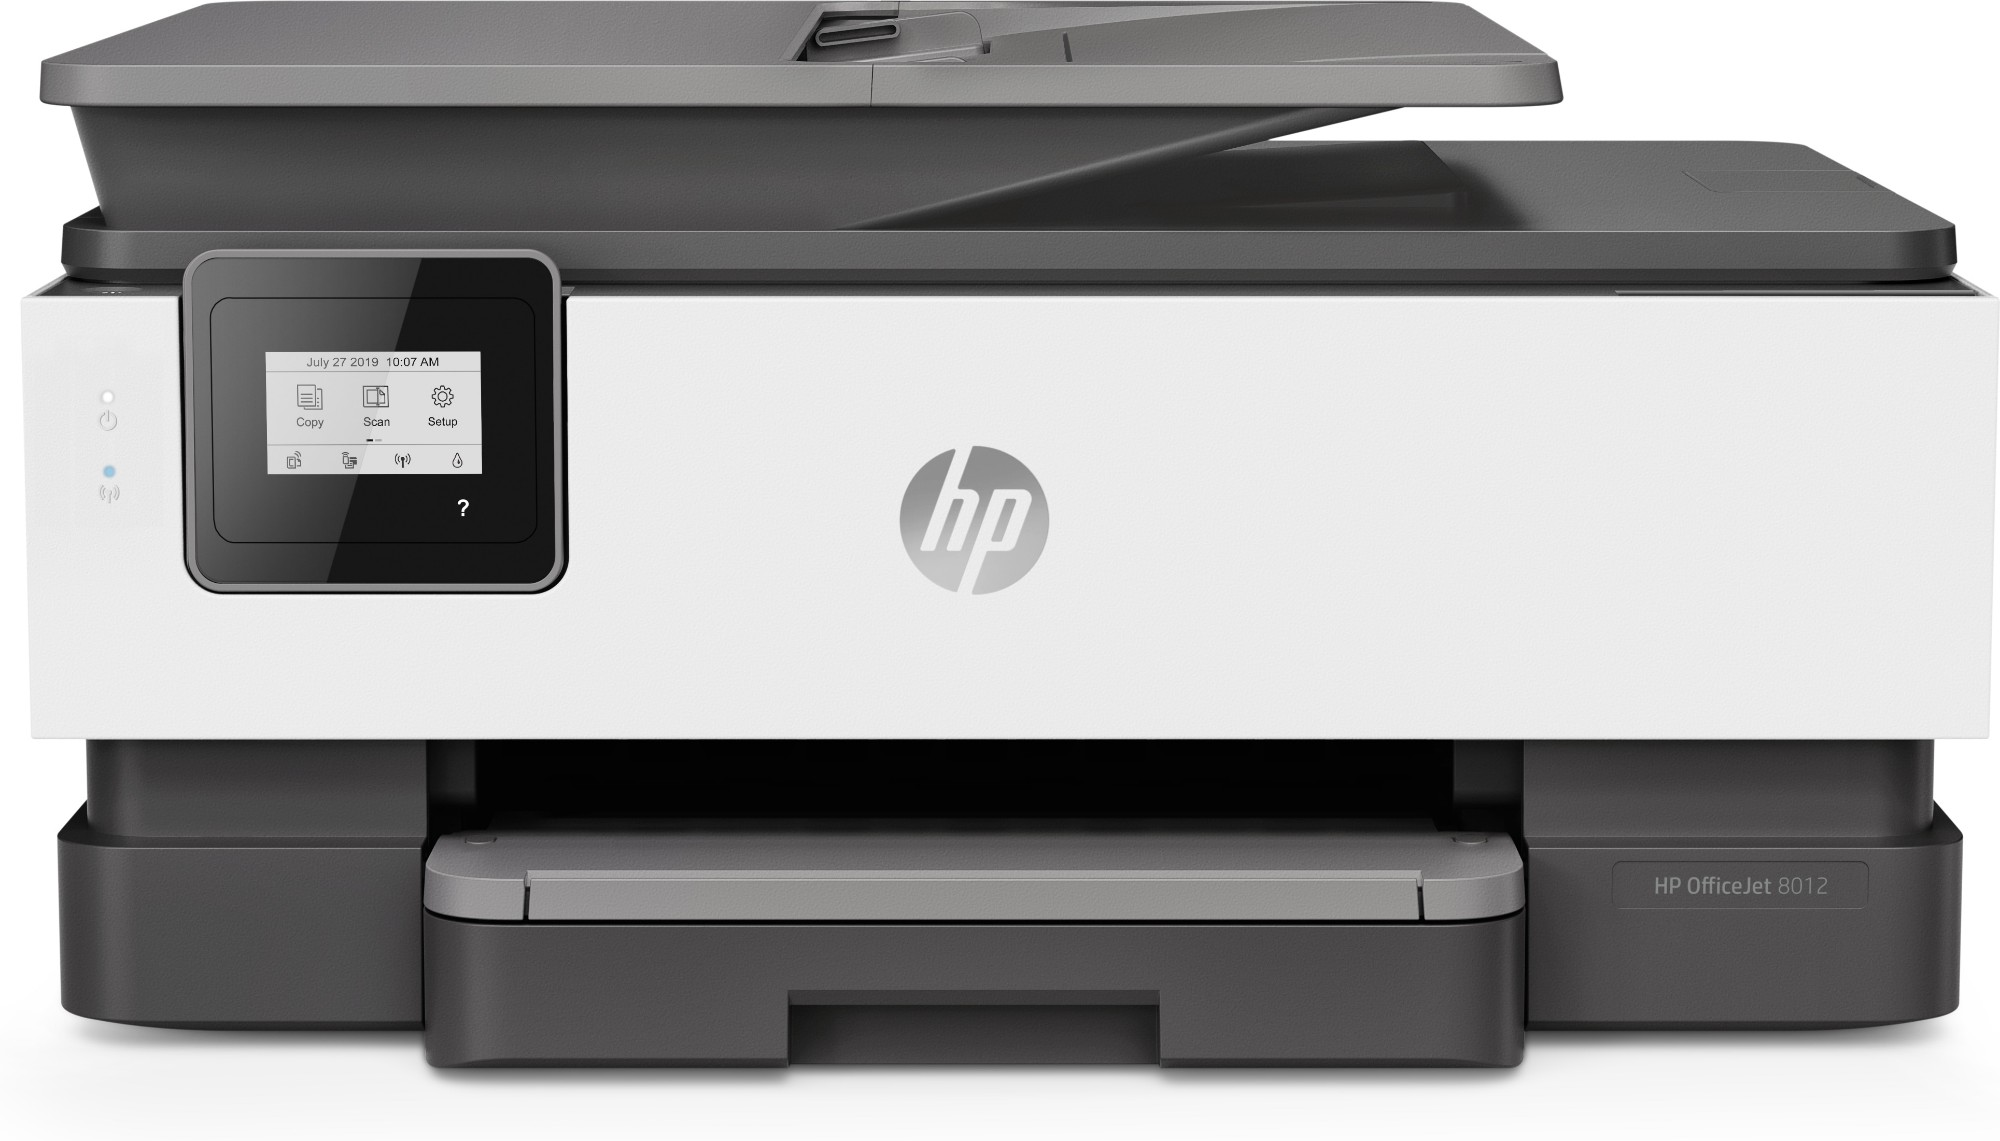 HP OfficeJet 8012 Thermal inkjet A4 4800 x 1200 DPI 18 ppm Wi-Fi